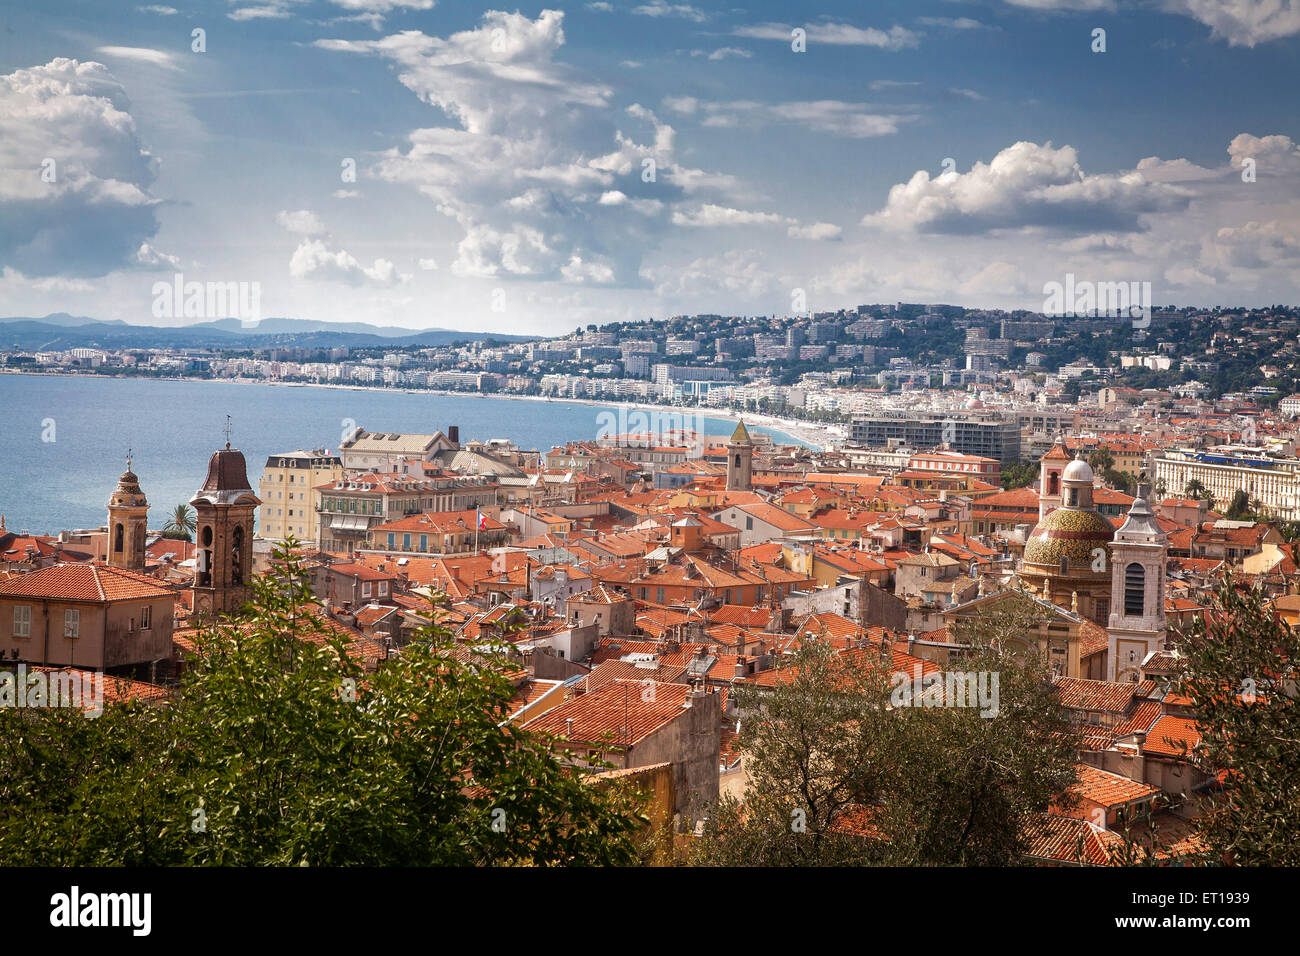 The skyline of Nice, France. - Stock Image